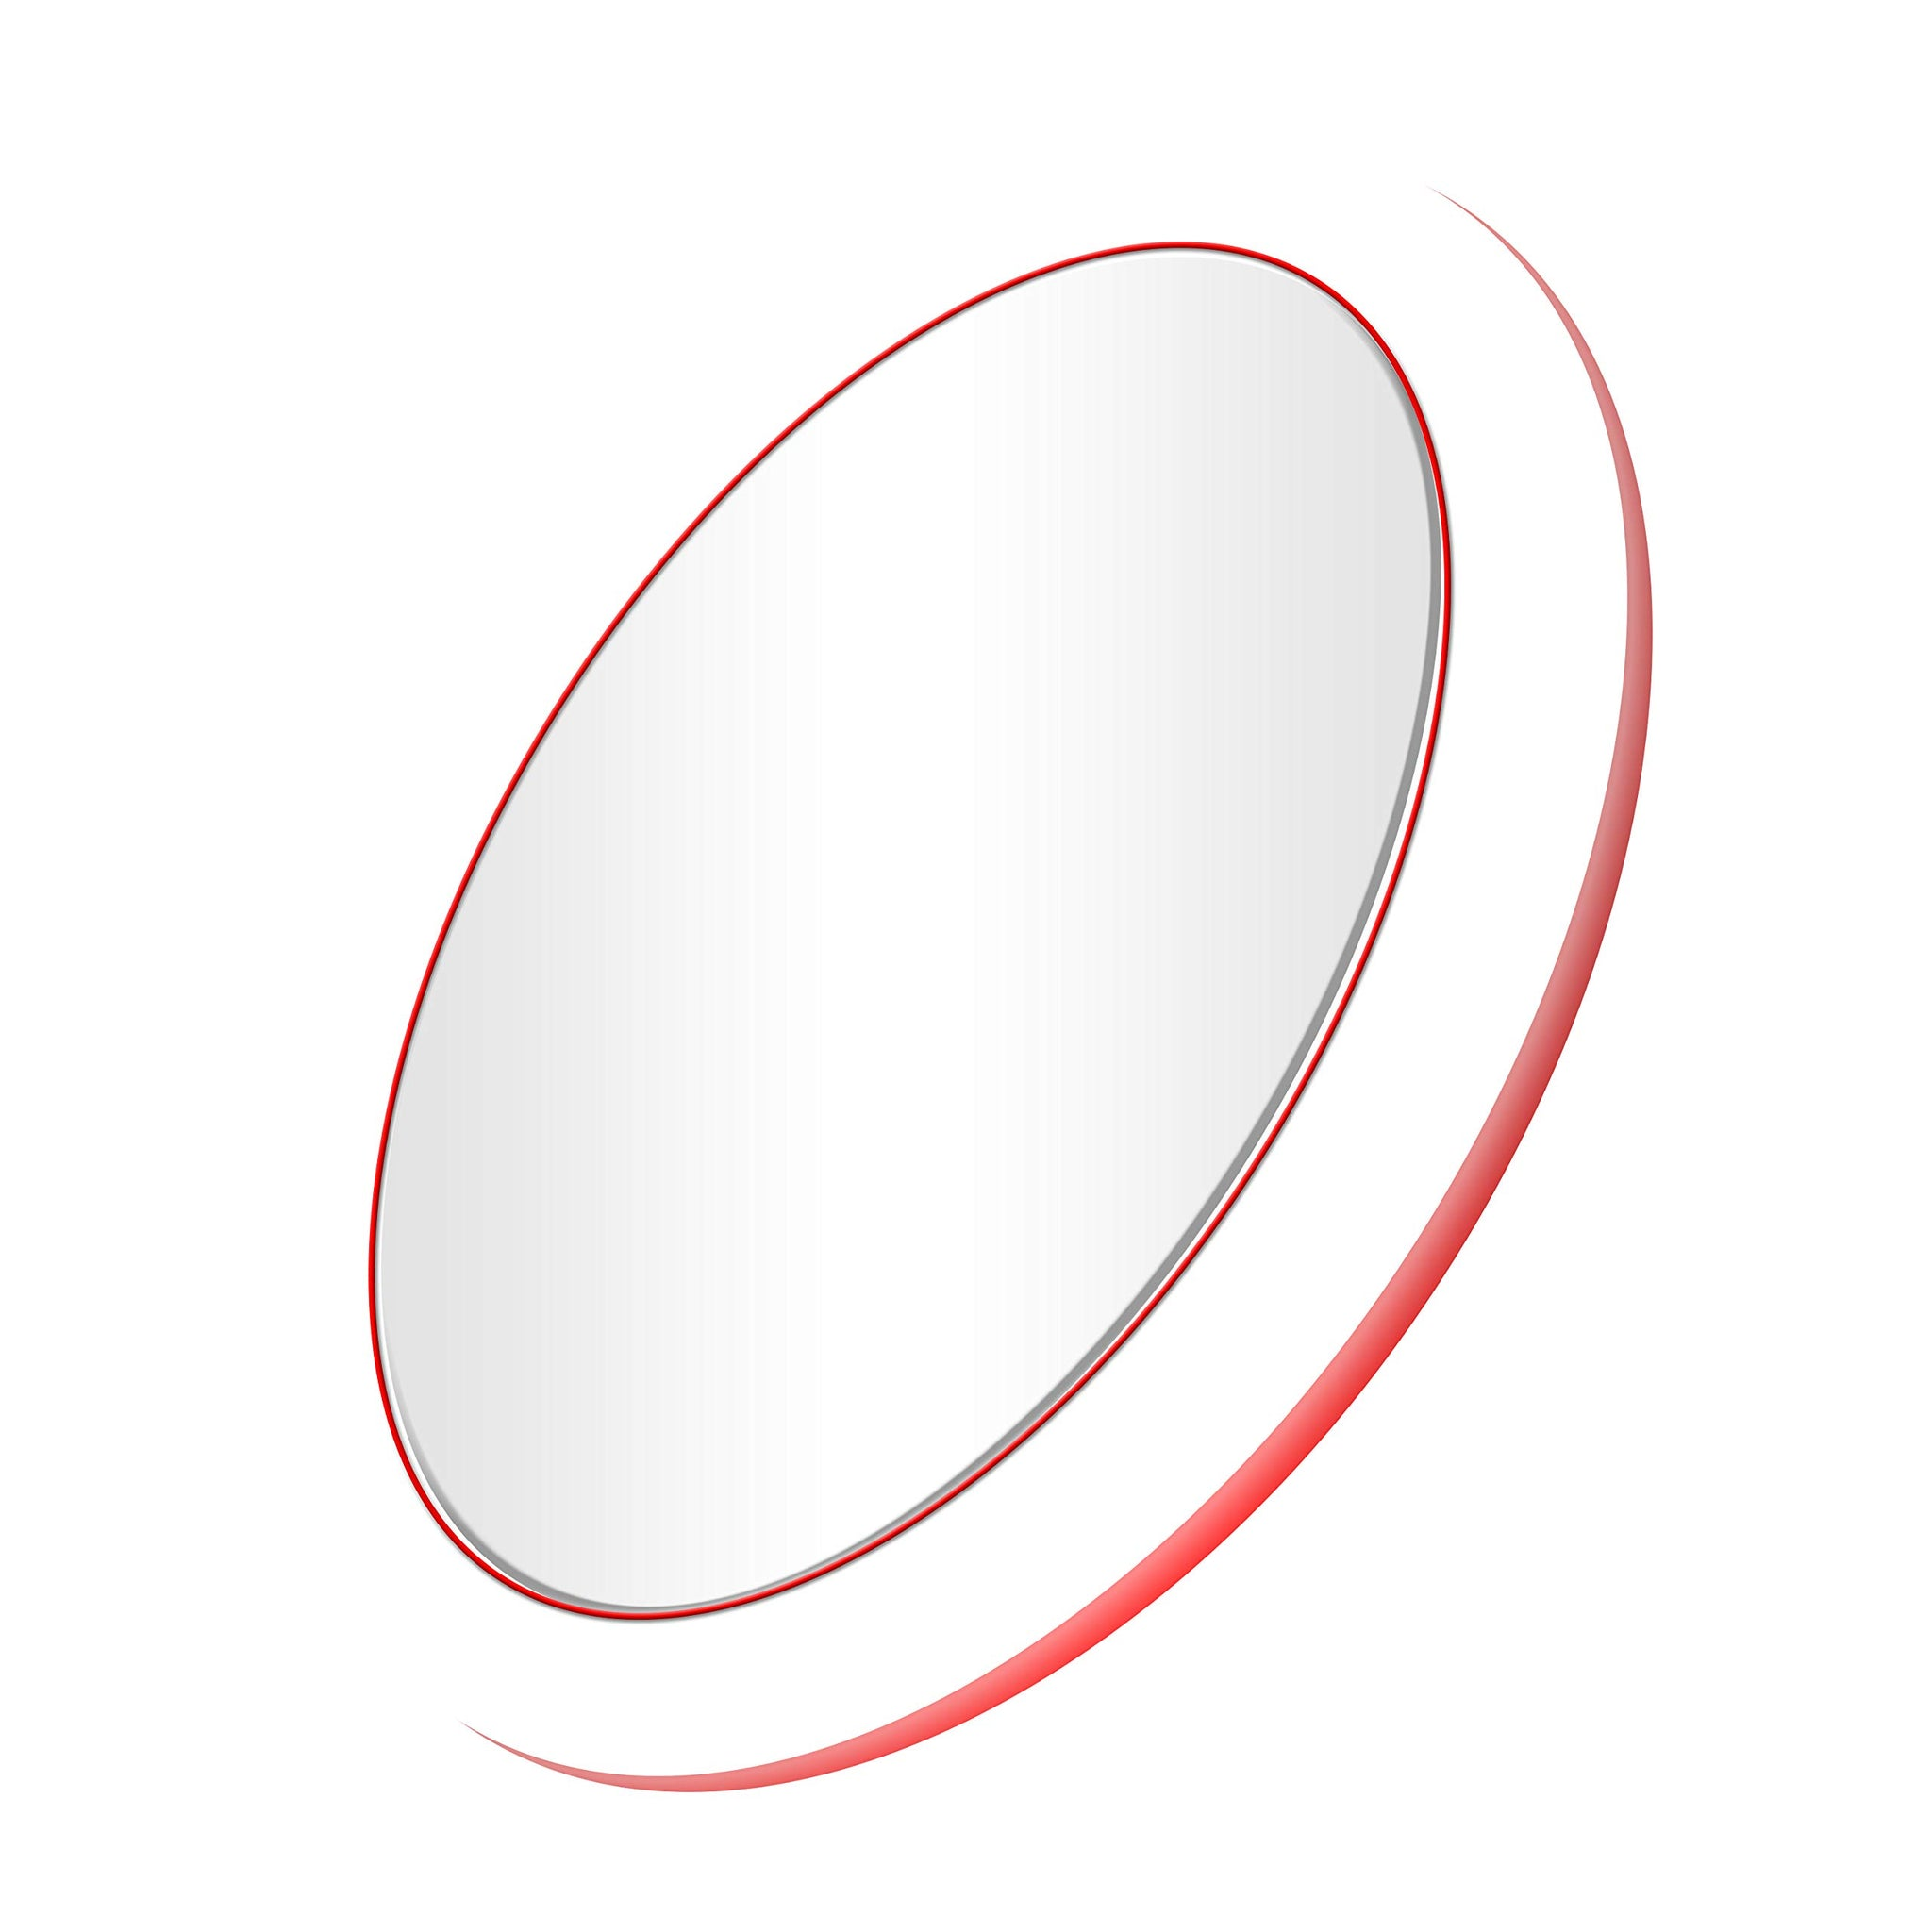 Mirrex Portable Lighted Makeup Mirror with Wireless Charging base for IOS and Andriod Phone, Vanity Mirrors with LED Lights, Professional Cosmetic Mirror for Travel, Skin Care Prefect for Women (Red)